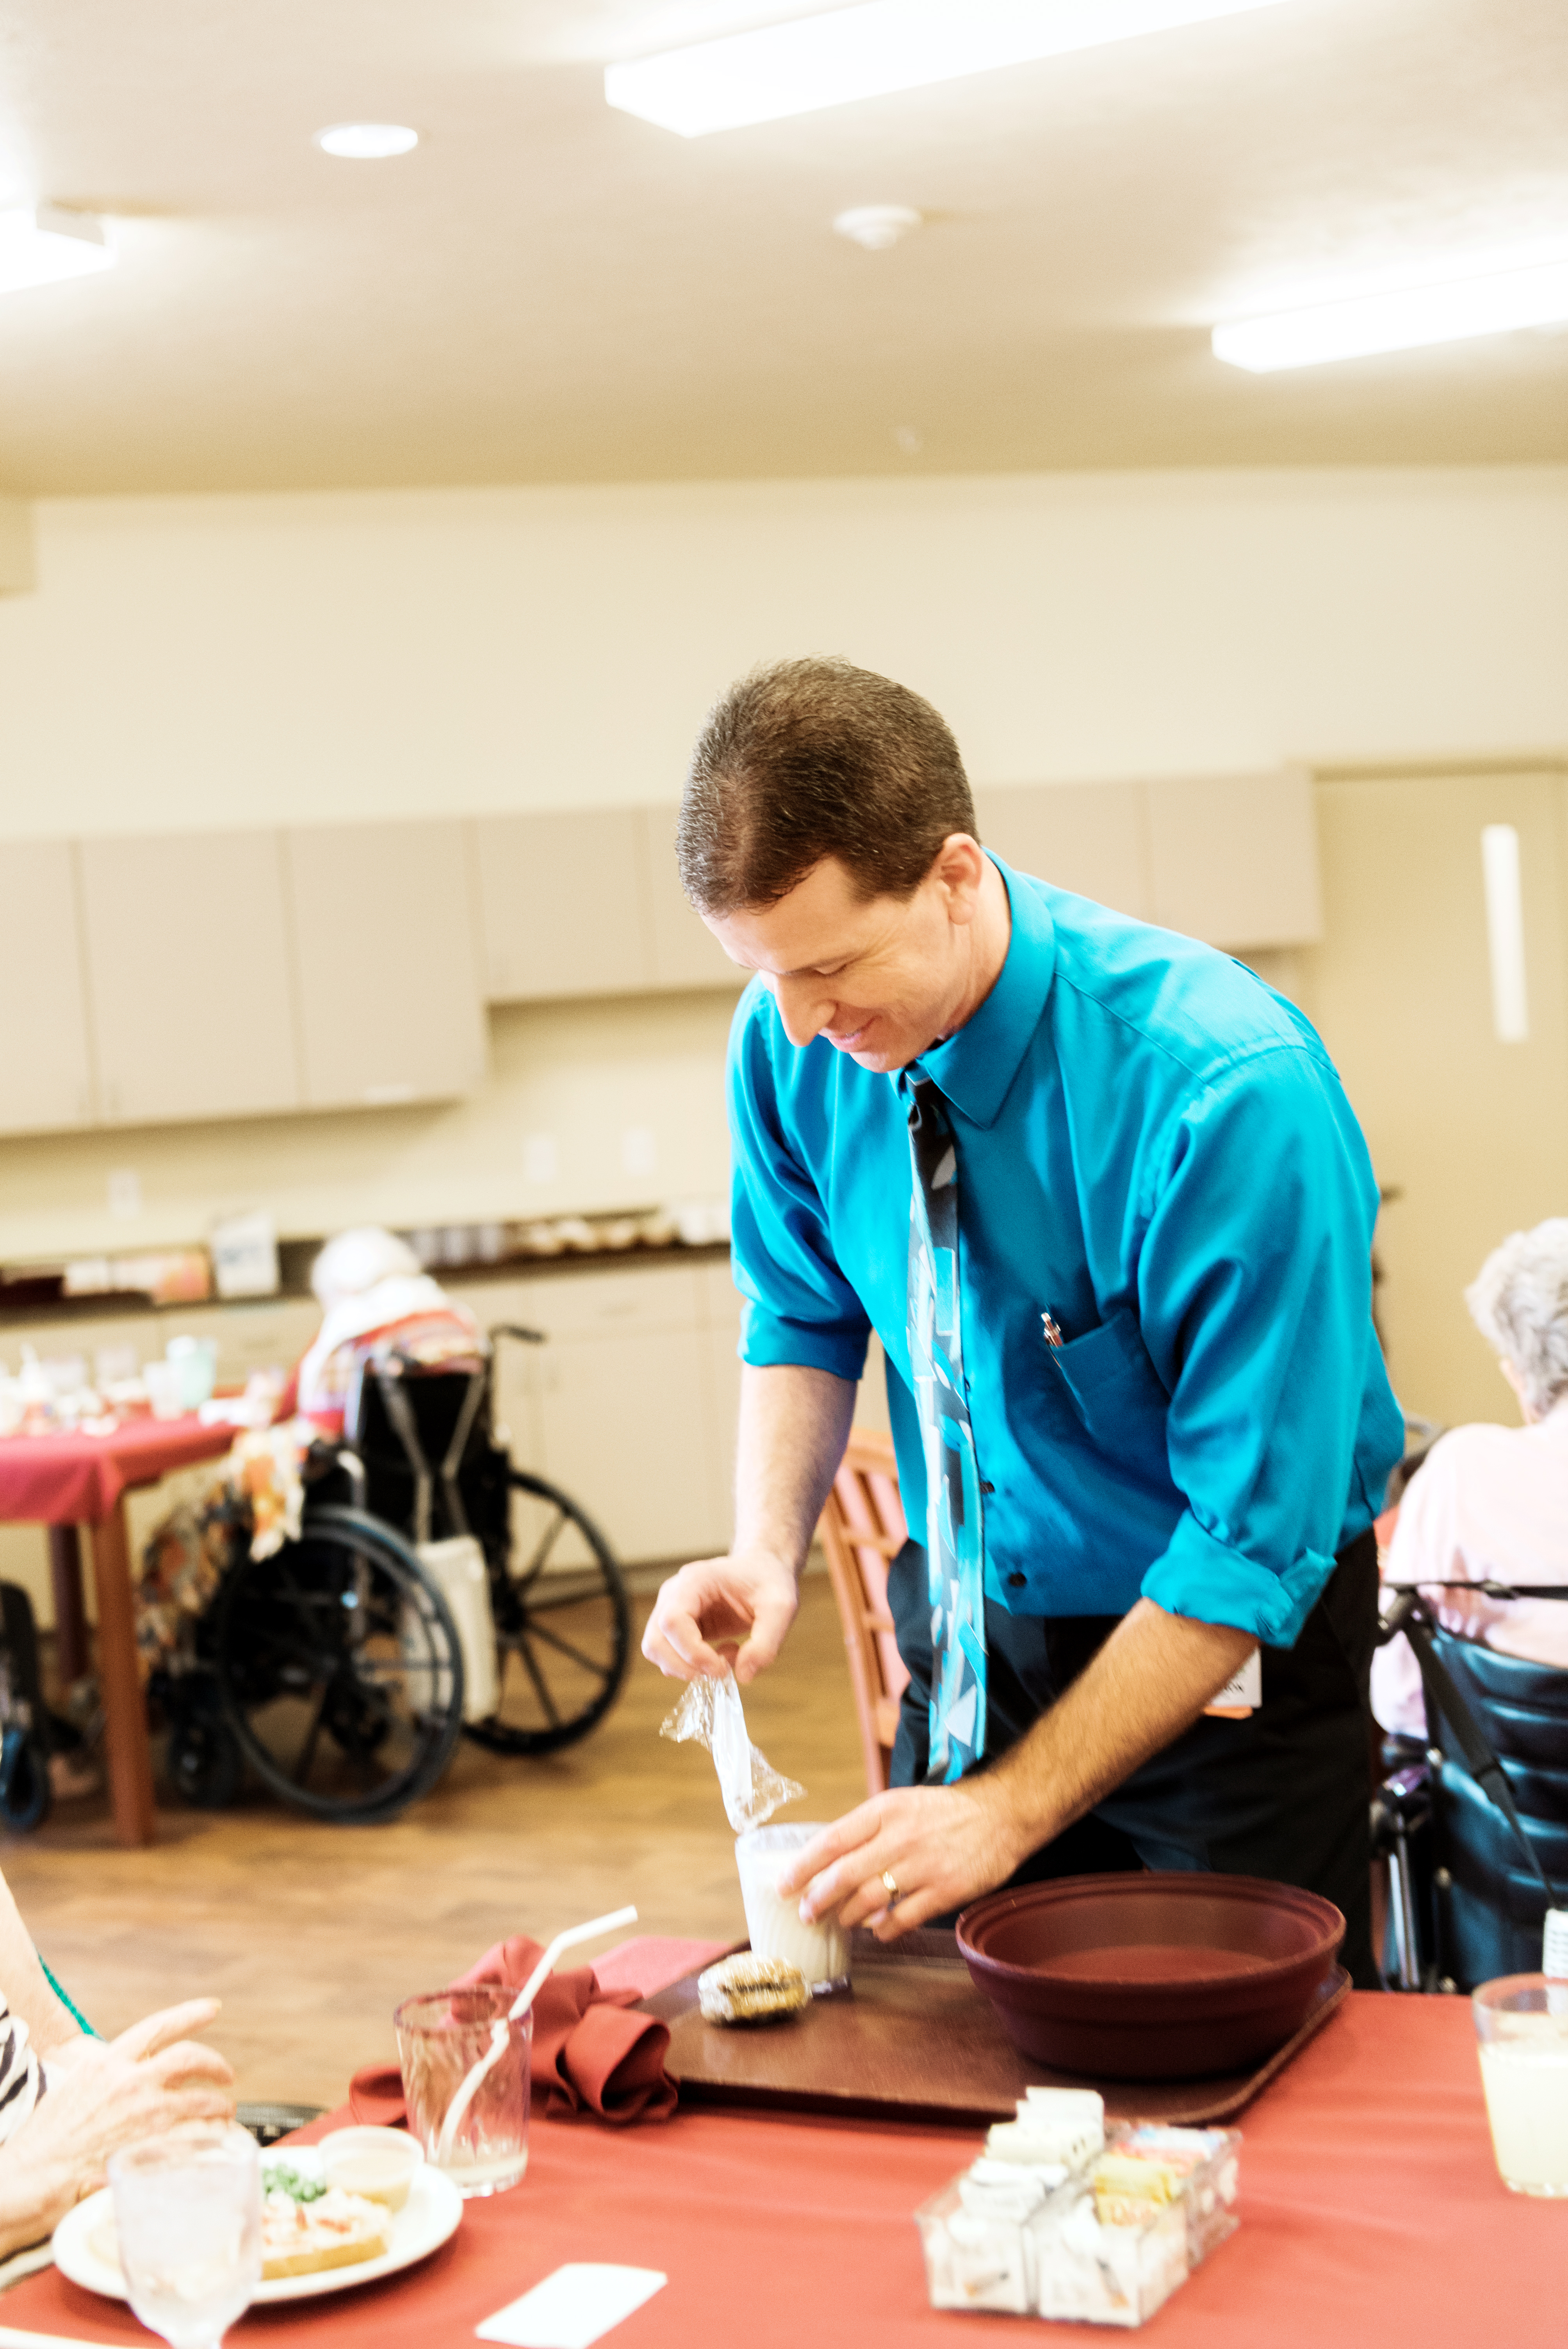 Quinn Meadows Rehabilitation and Care Center Pocatello ID TanaBell Health Services